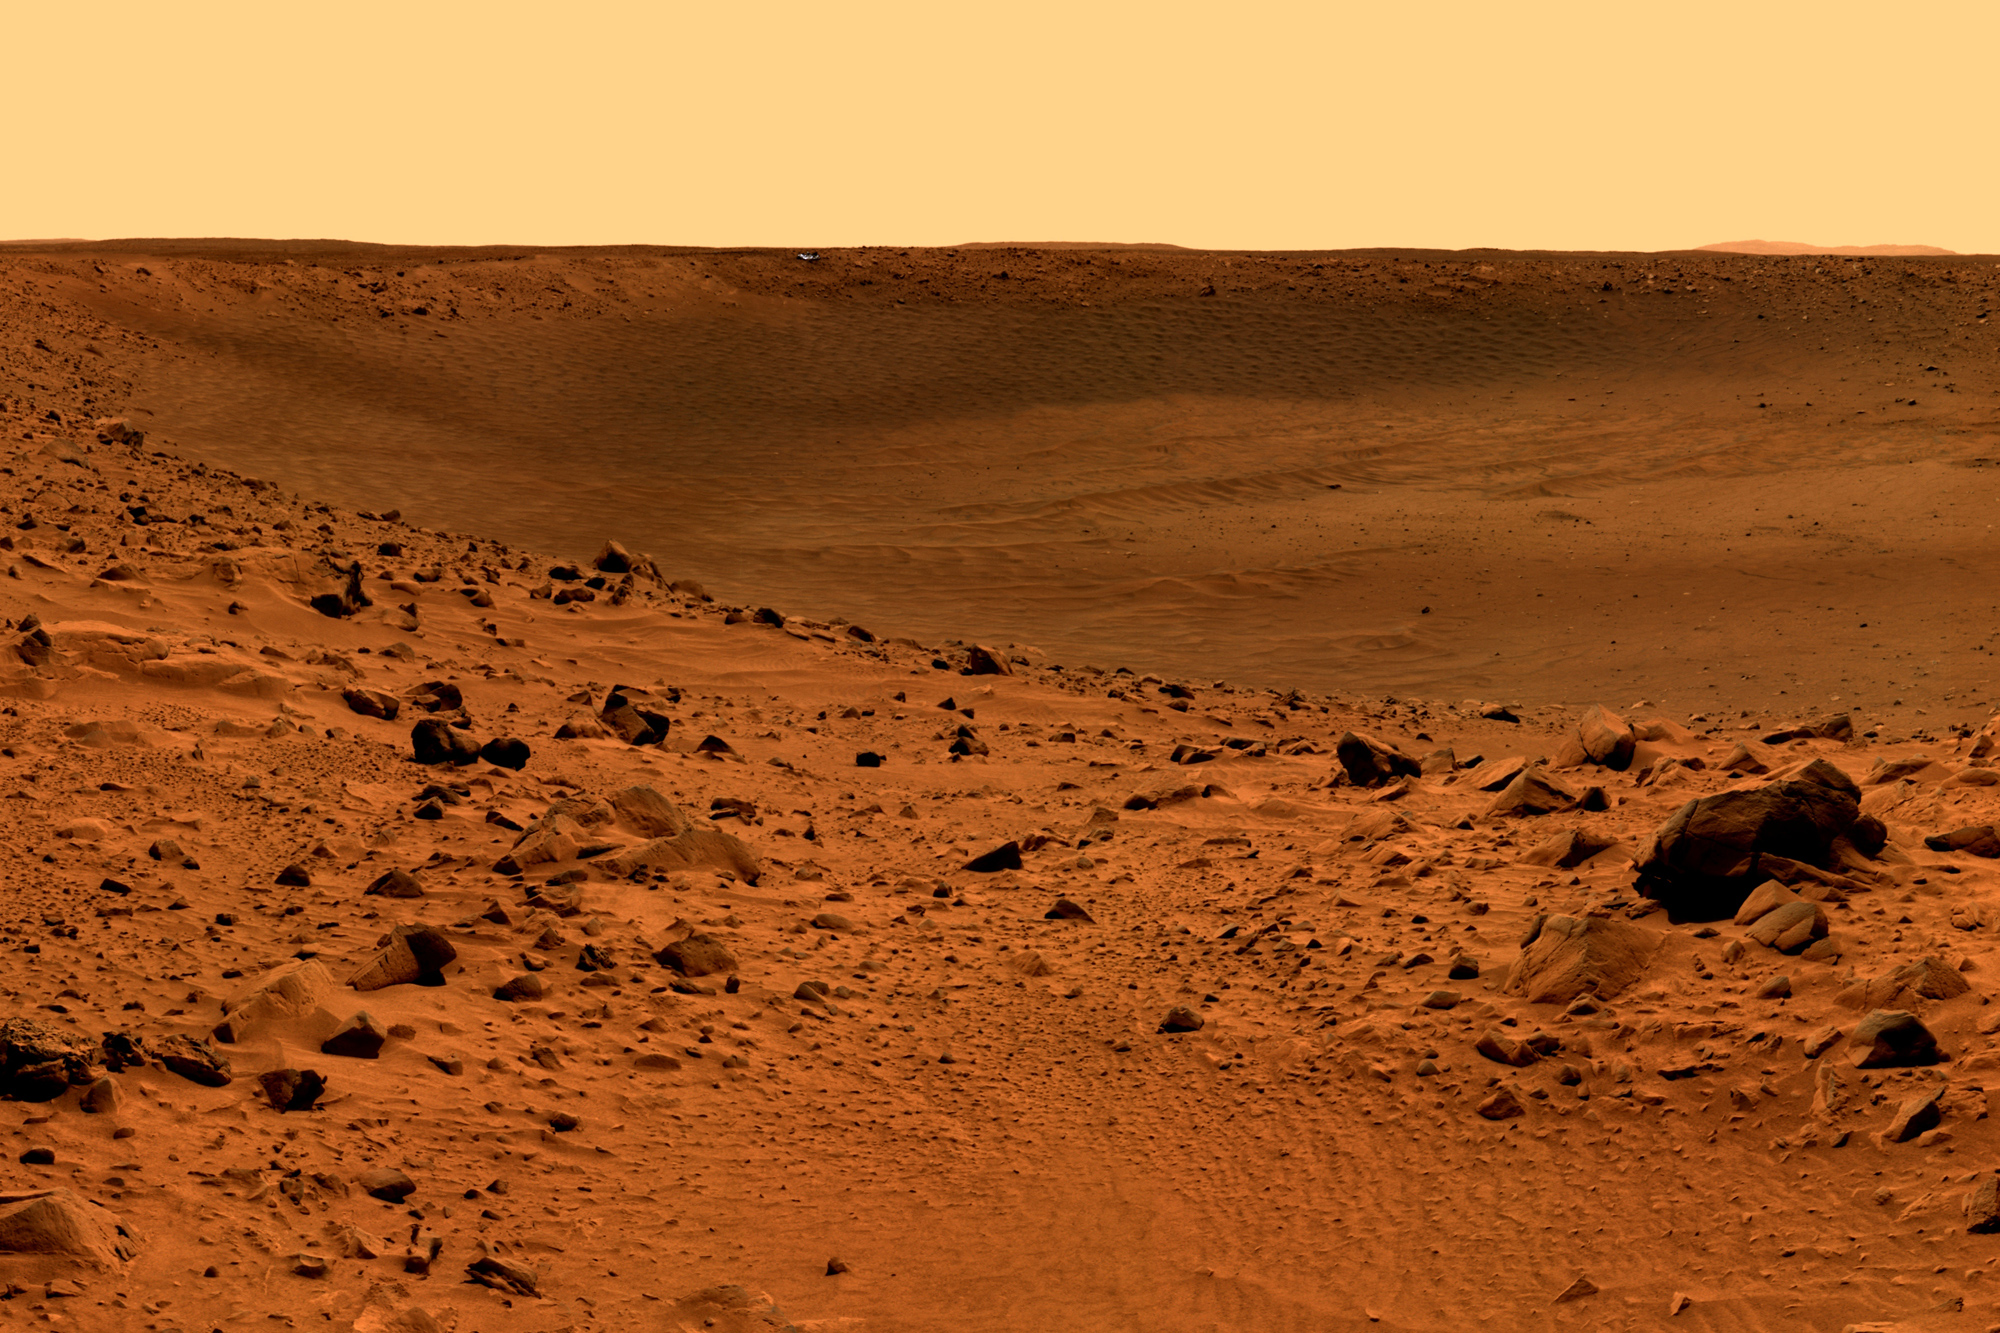 Mars 4th planet from sun red planet habitable rovers - Mars wallpaper ...